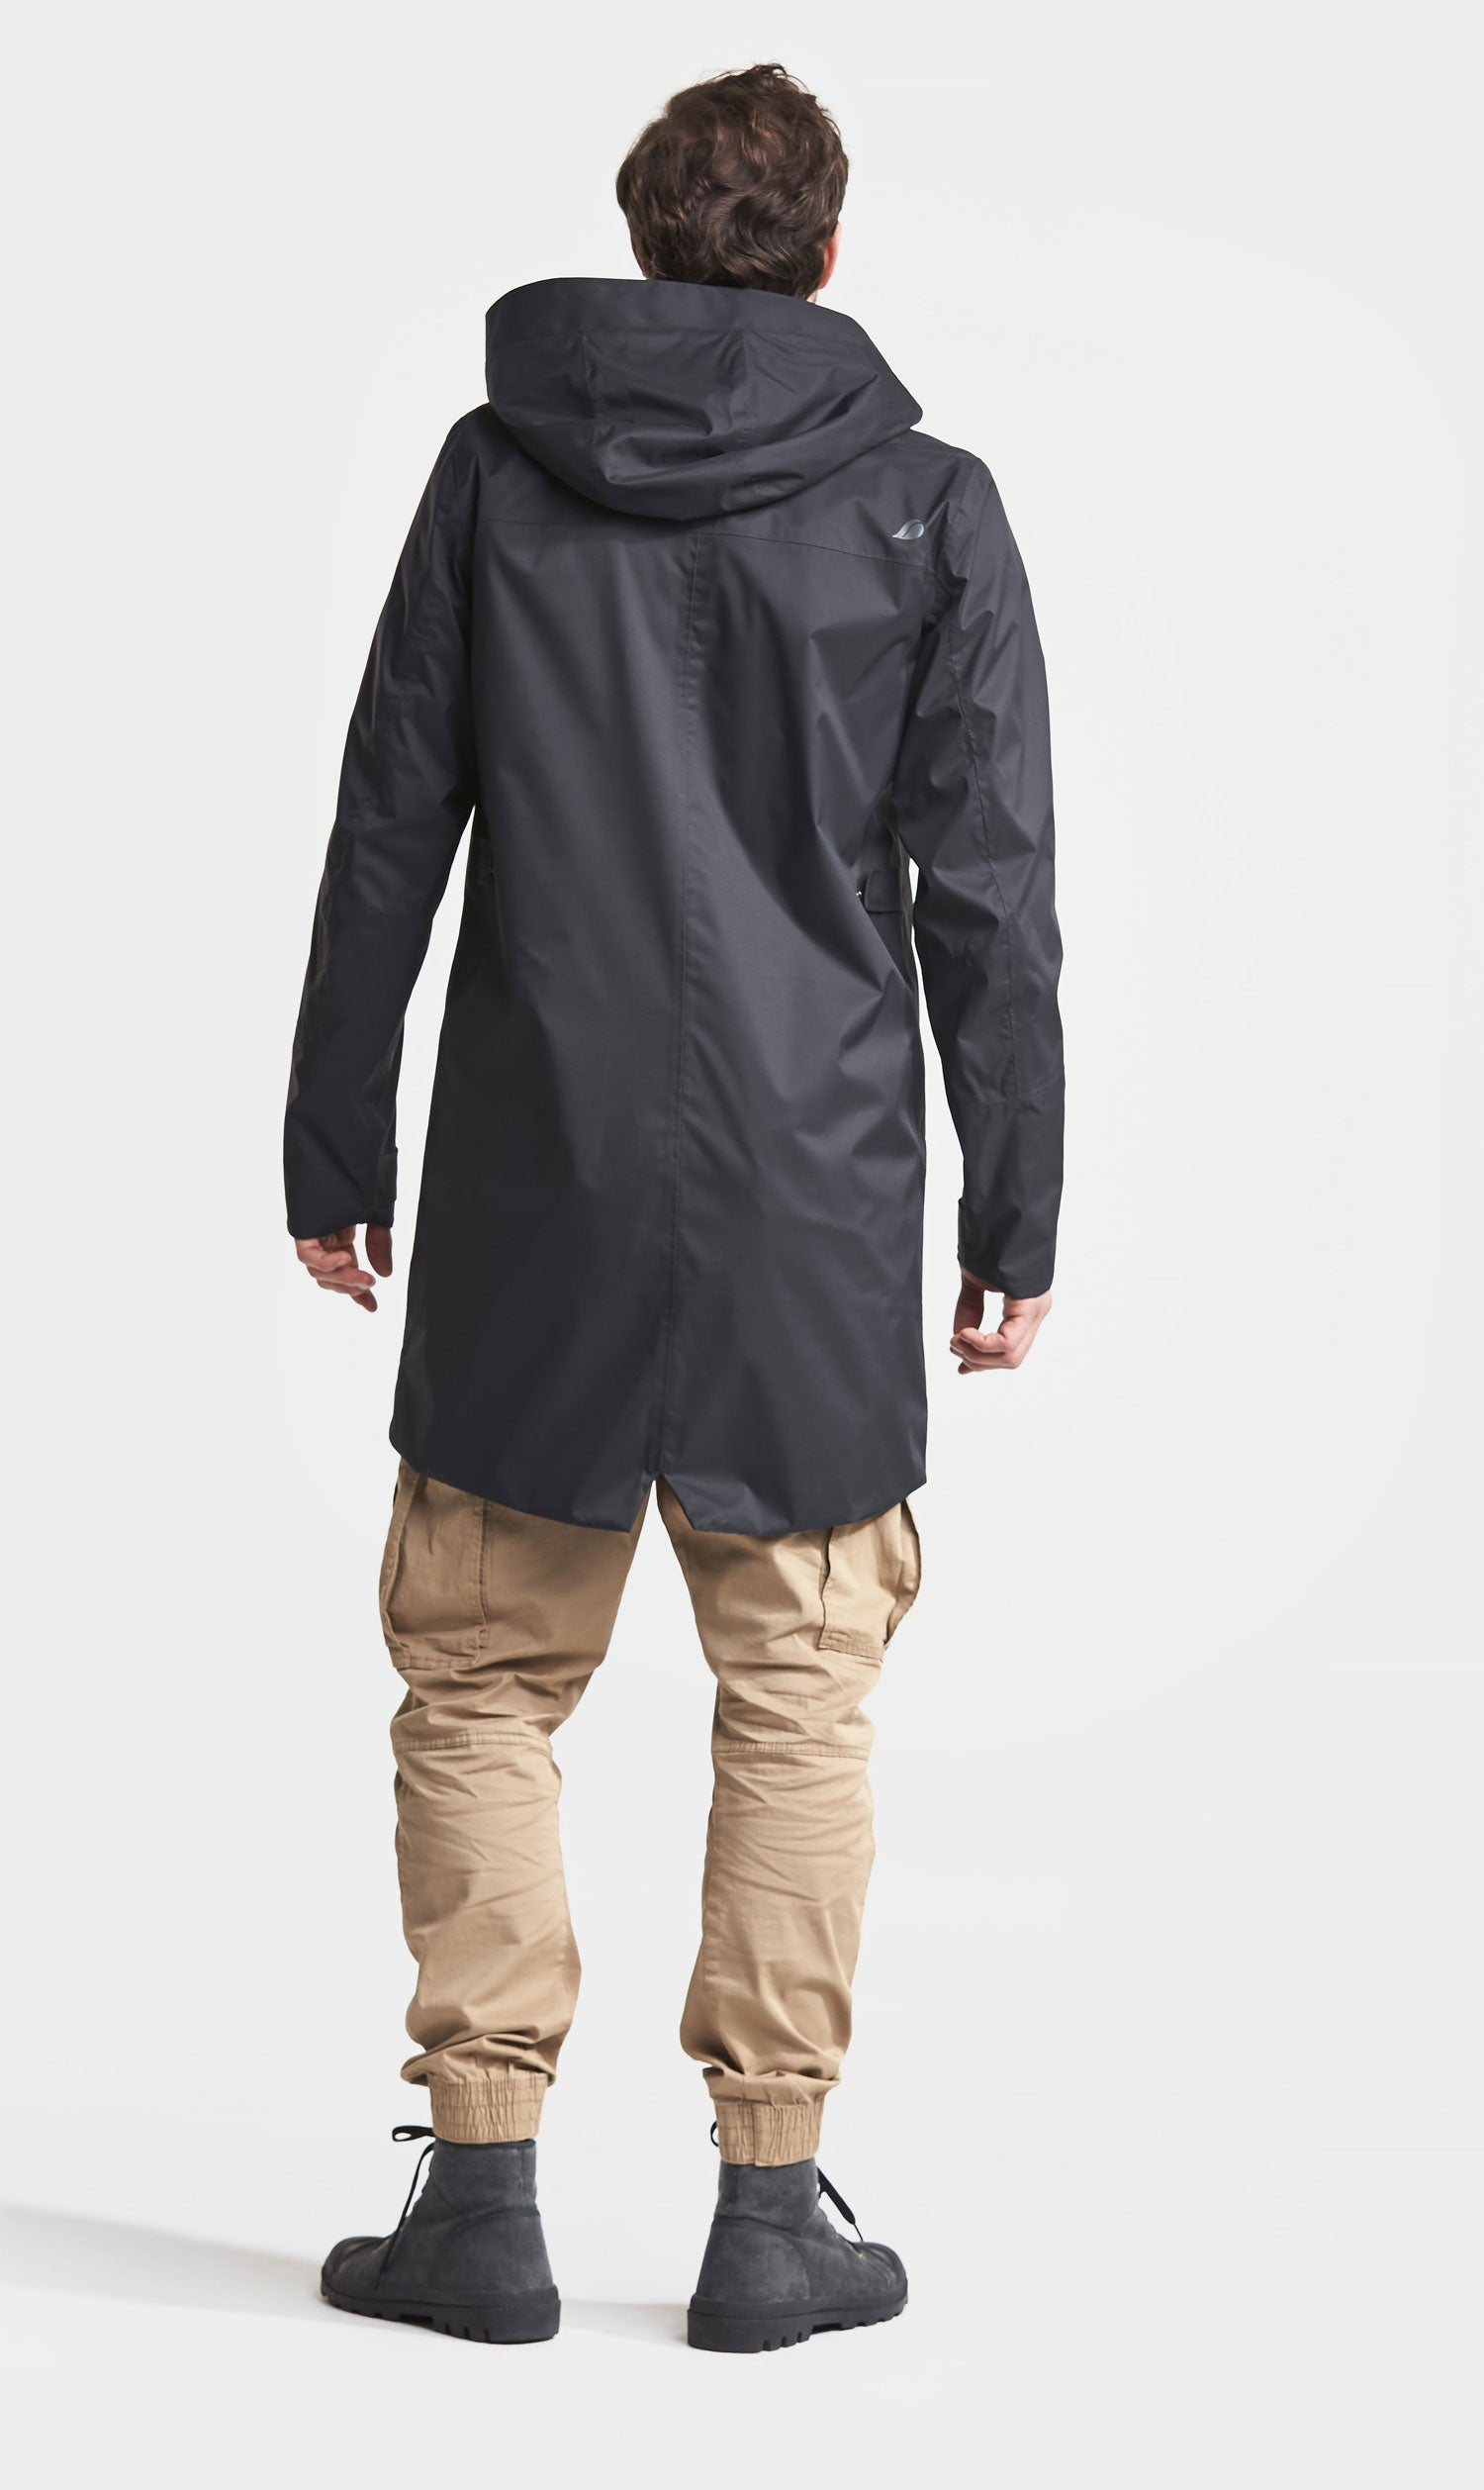 Rear view showing coat's parka tail